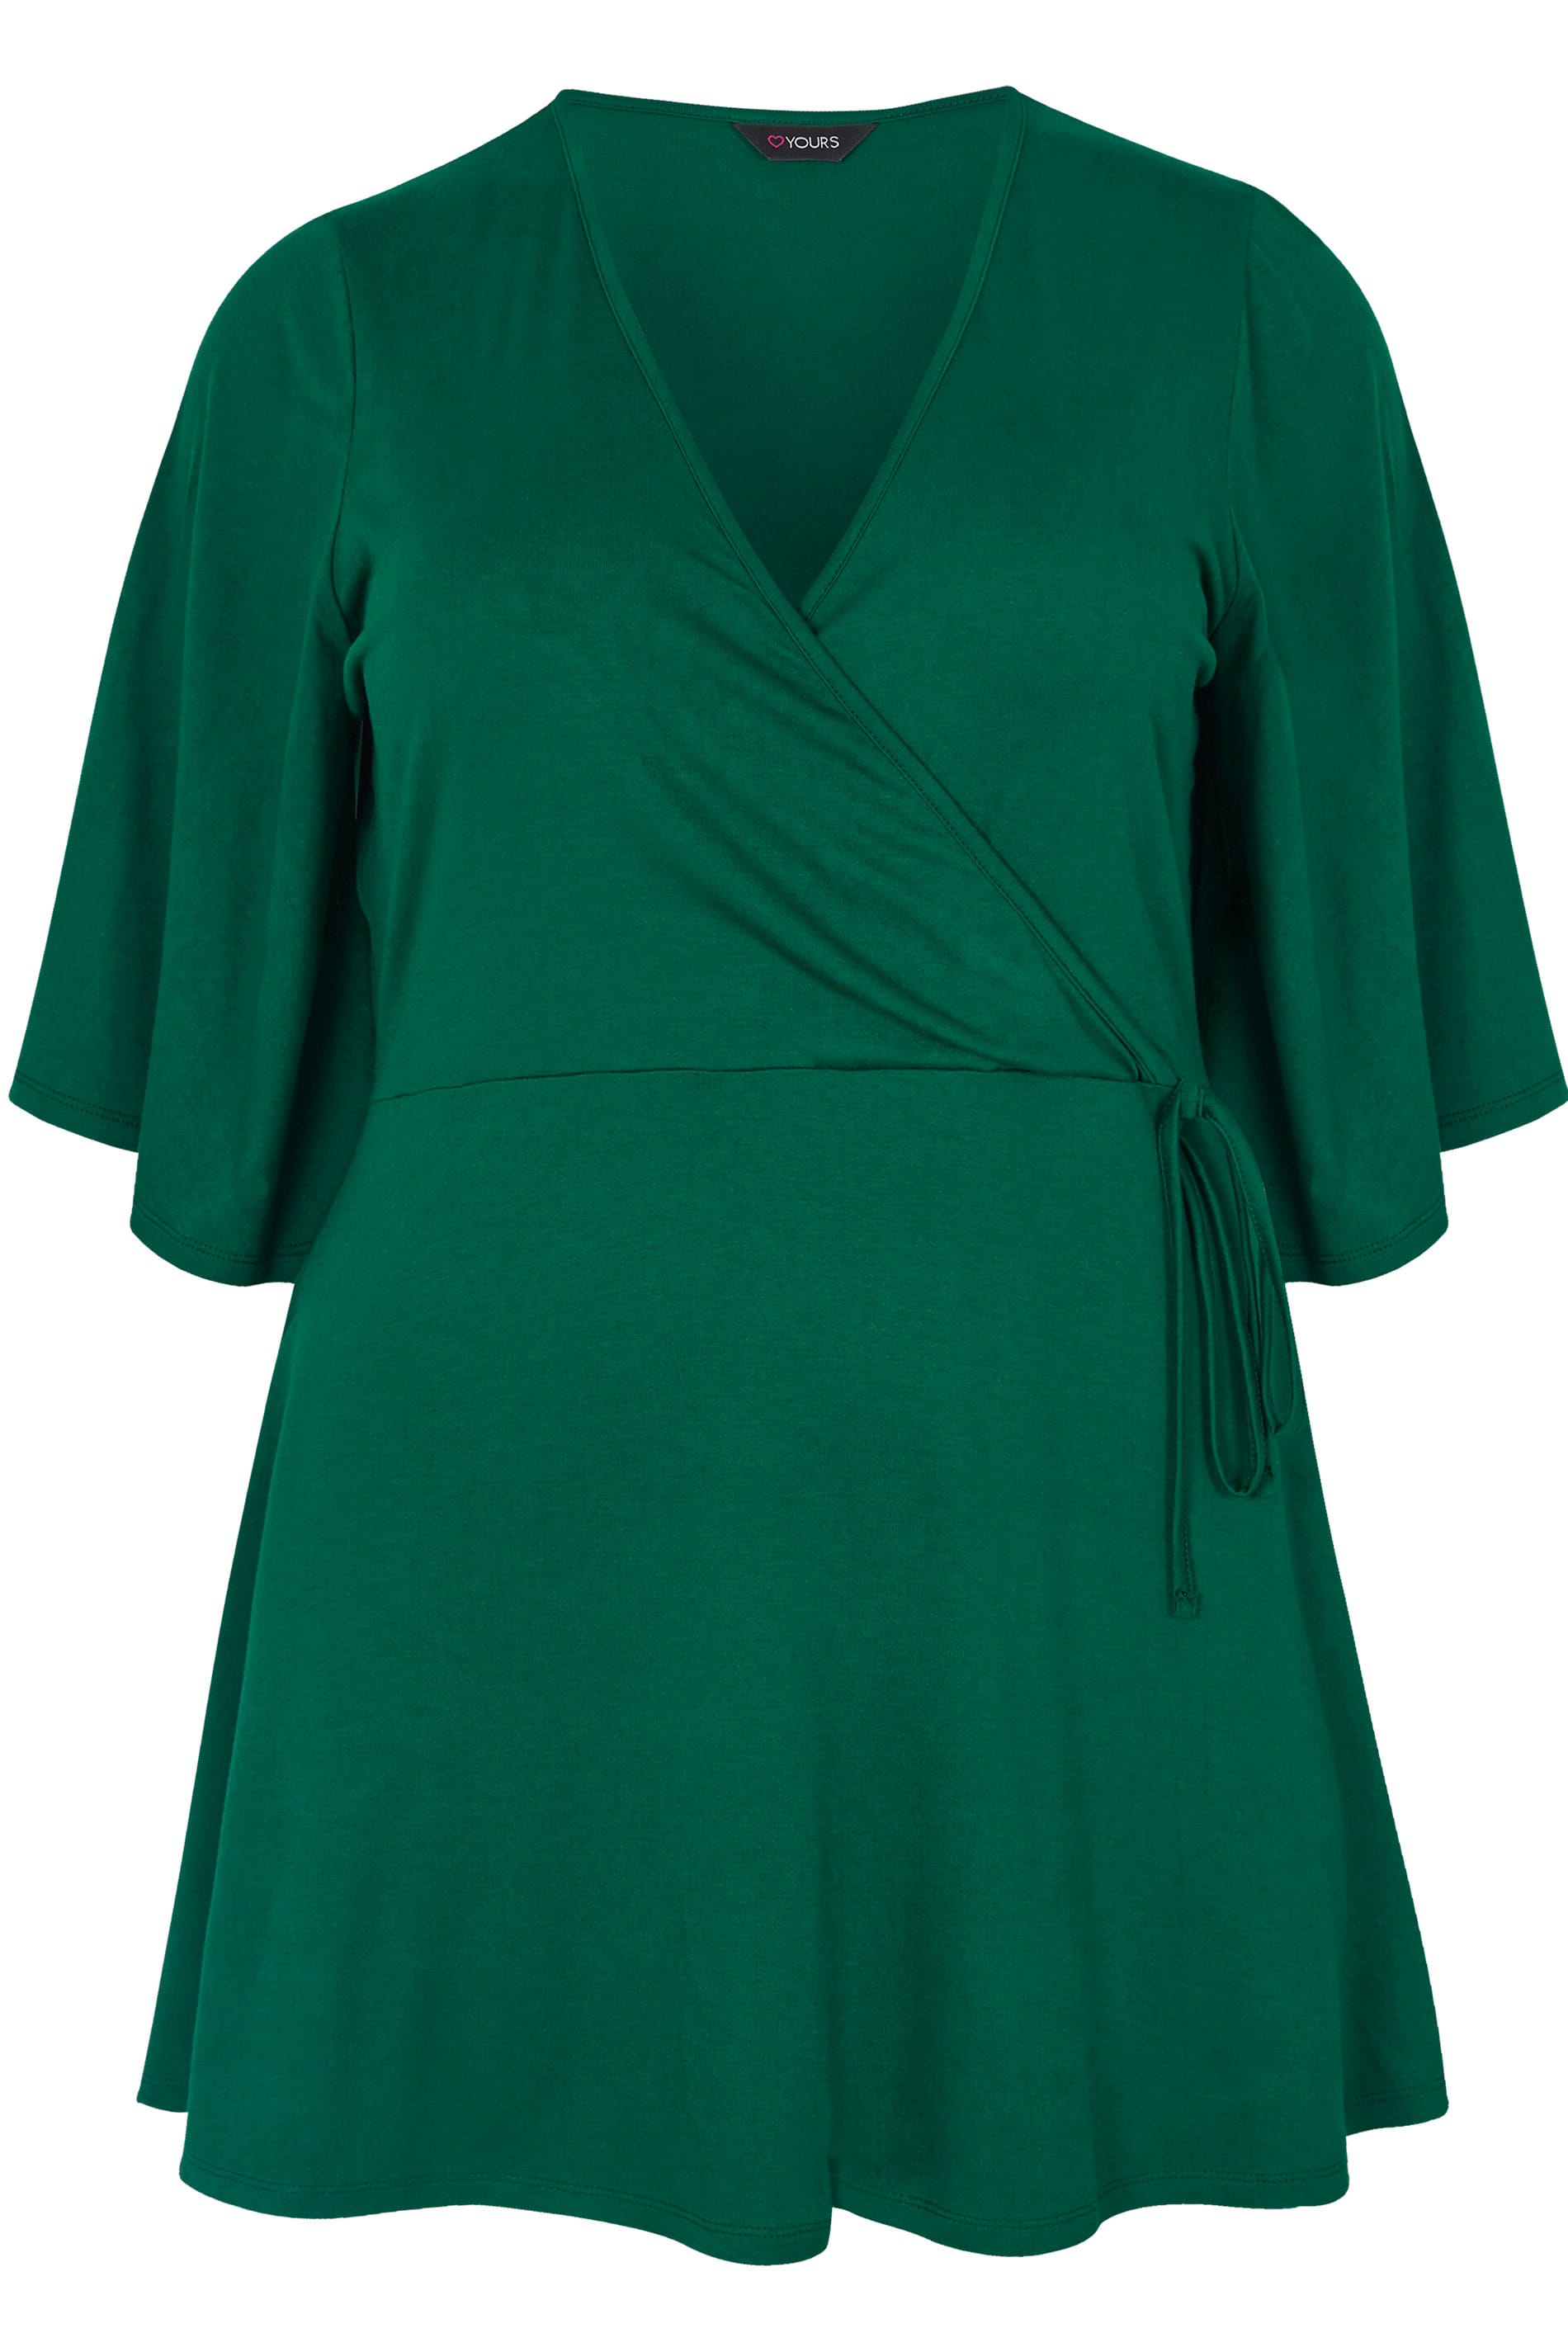 Plus Size Green Kimono Wrap Top Sizes 16 To 36 Yours